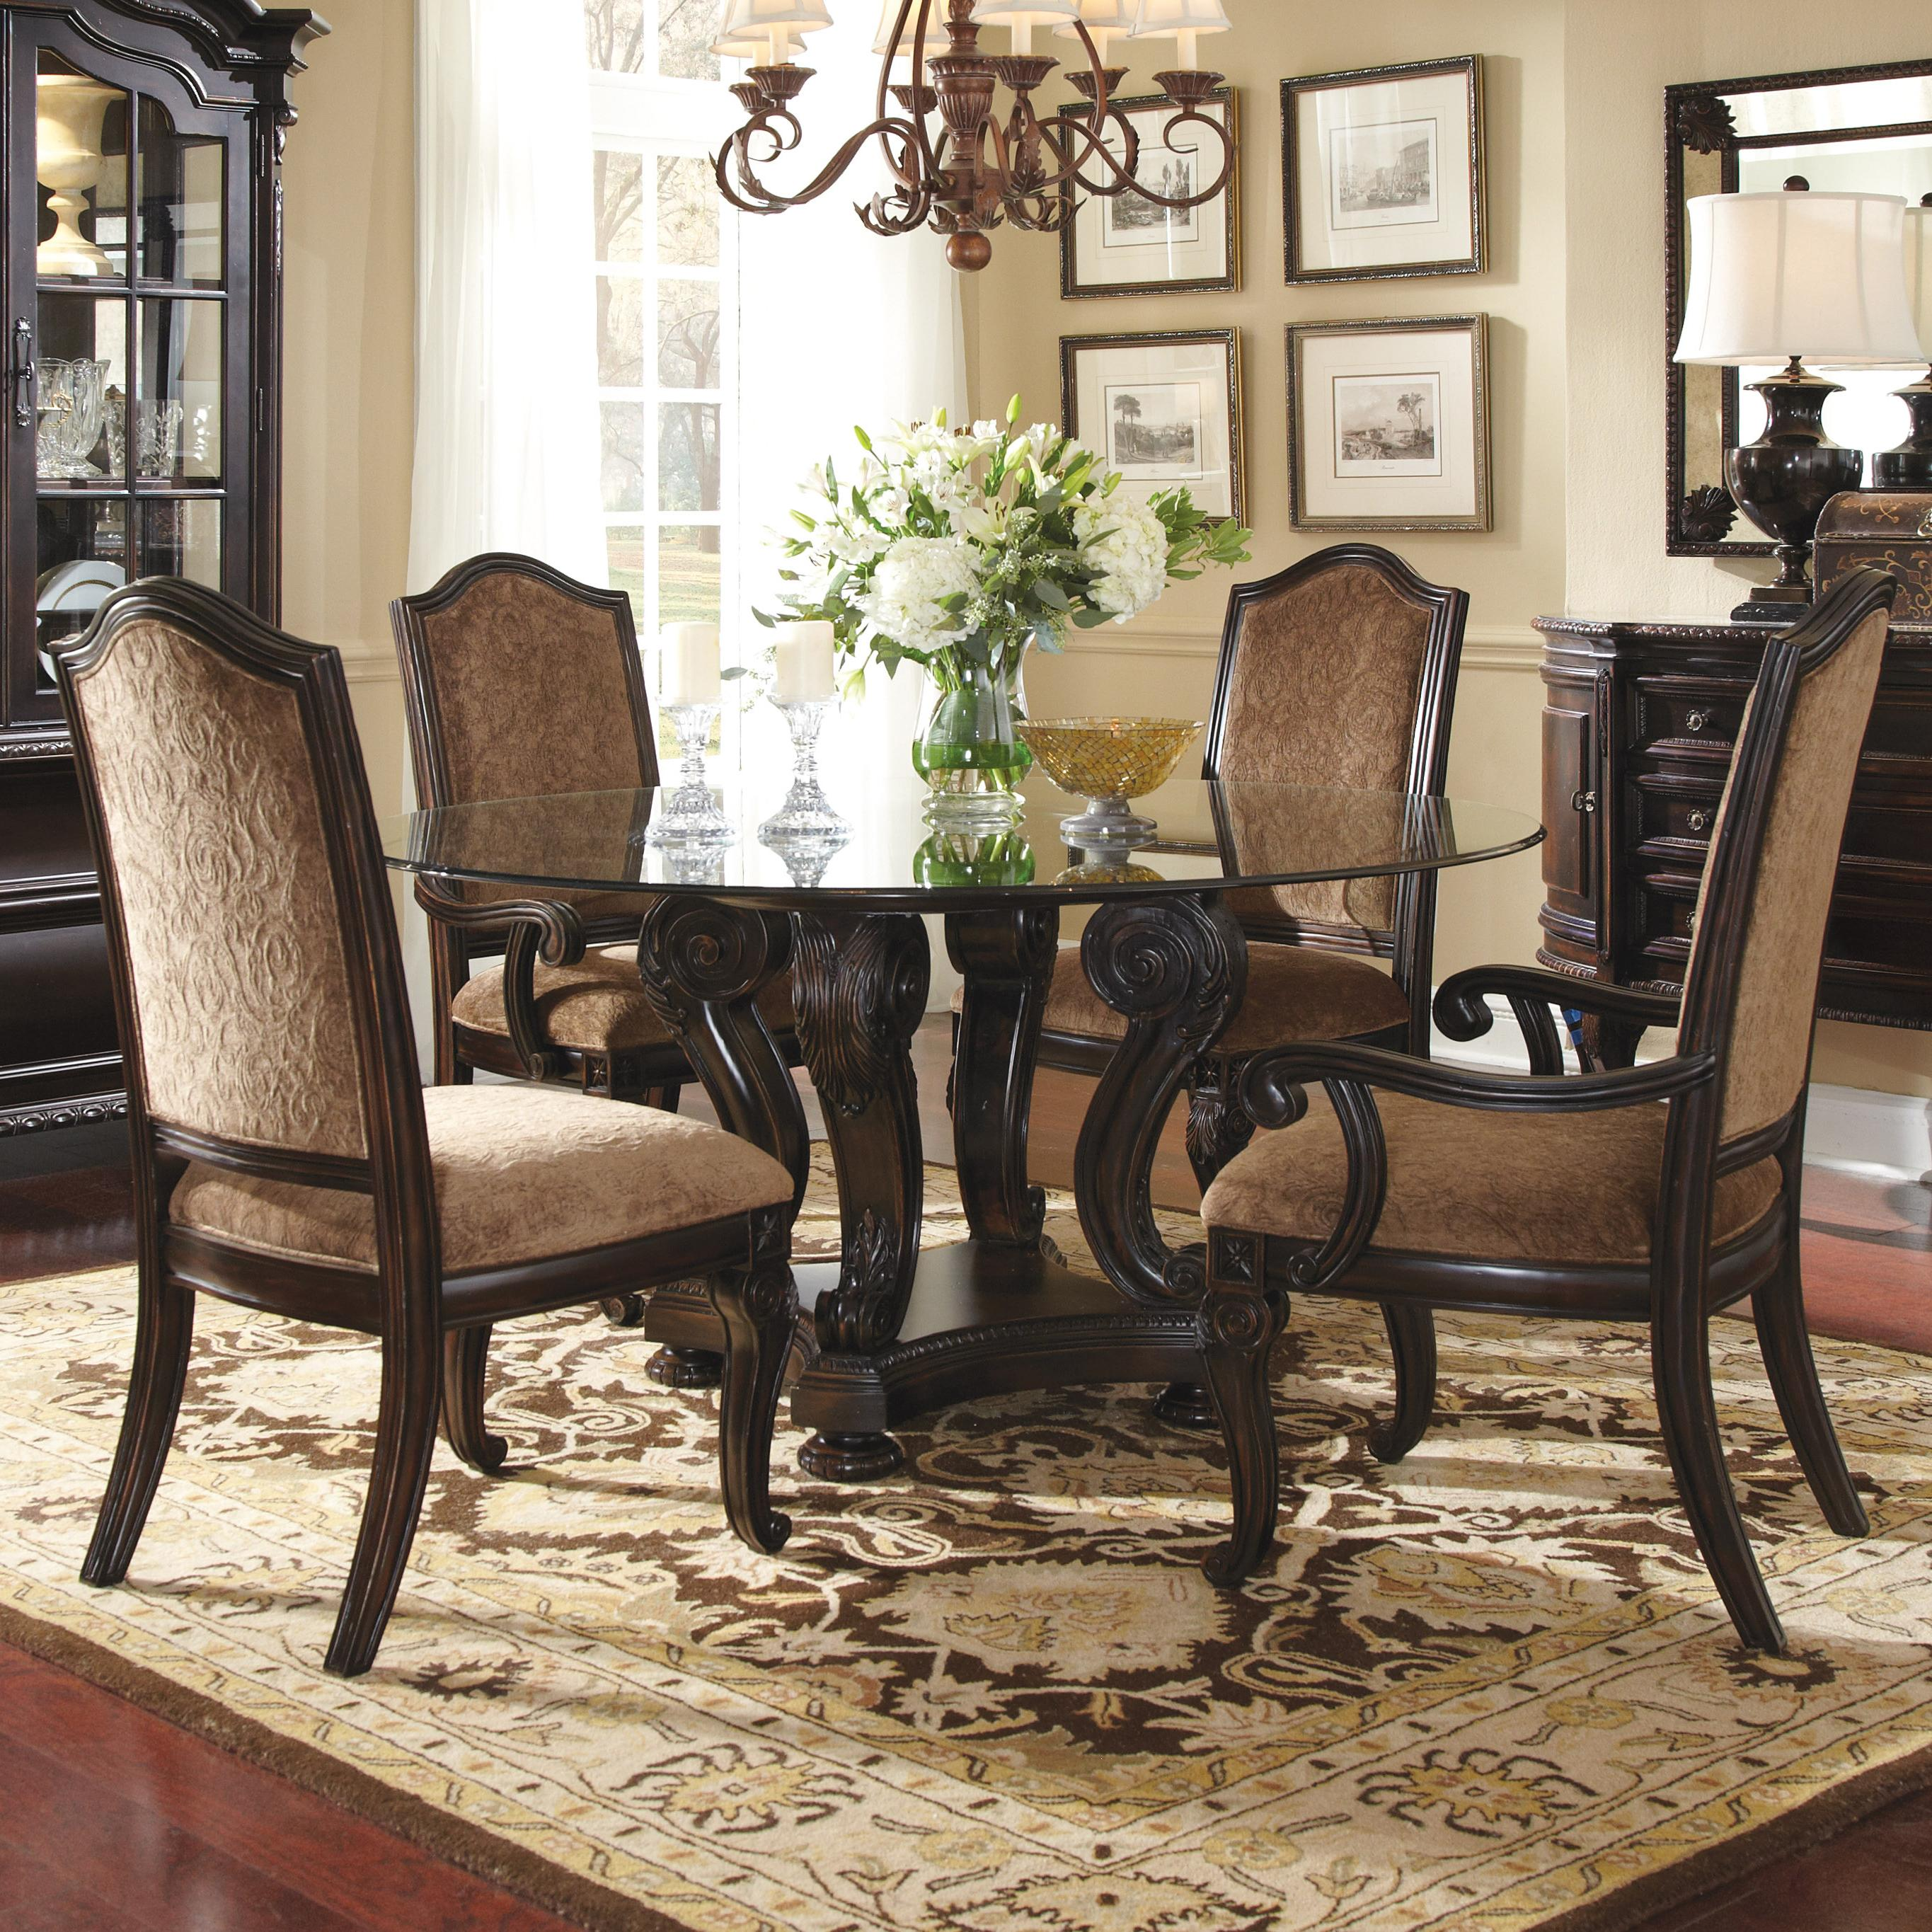 Dining room table bases for glass tops - Dining Room With Pedestal Table Base For Glass Top Warm Chairs Wonderful Decorative Rug And Dark